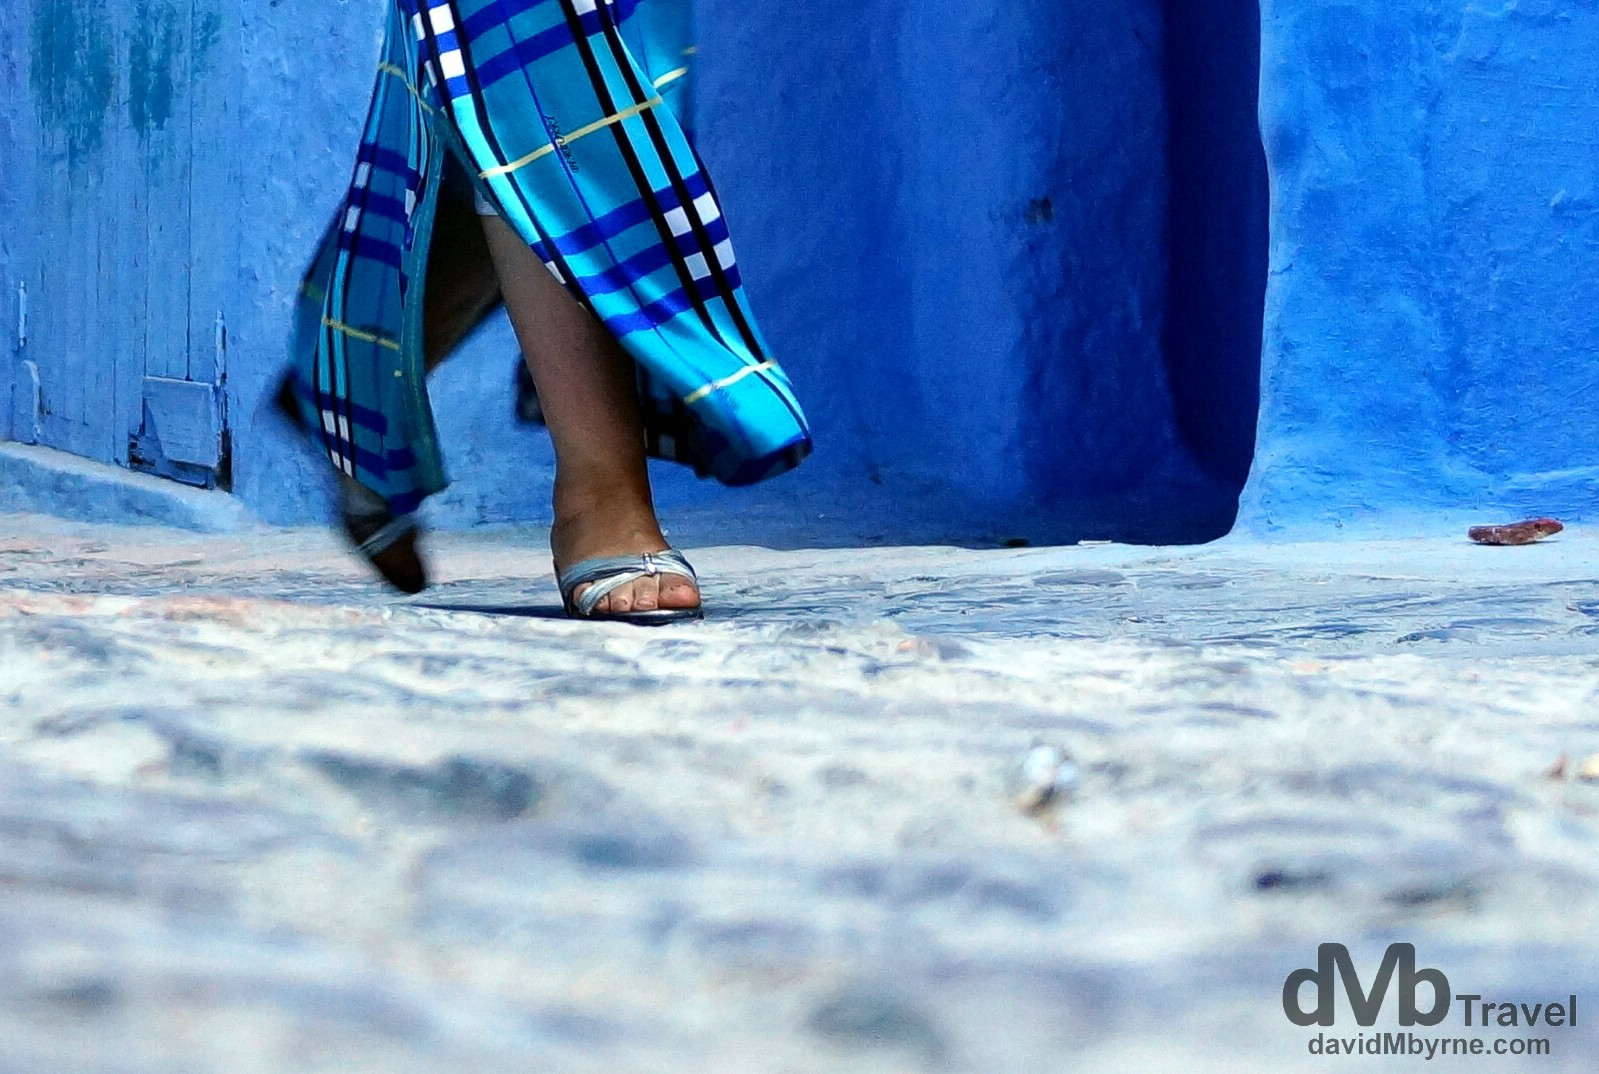 Walking in the blue lanes of the medina in Chefchaouen, Morocco. May 30th, 2014.